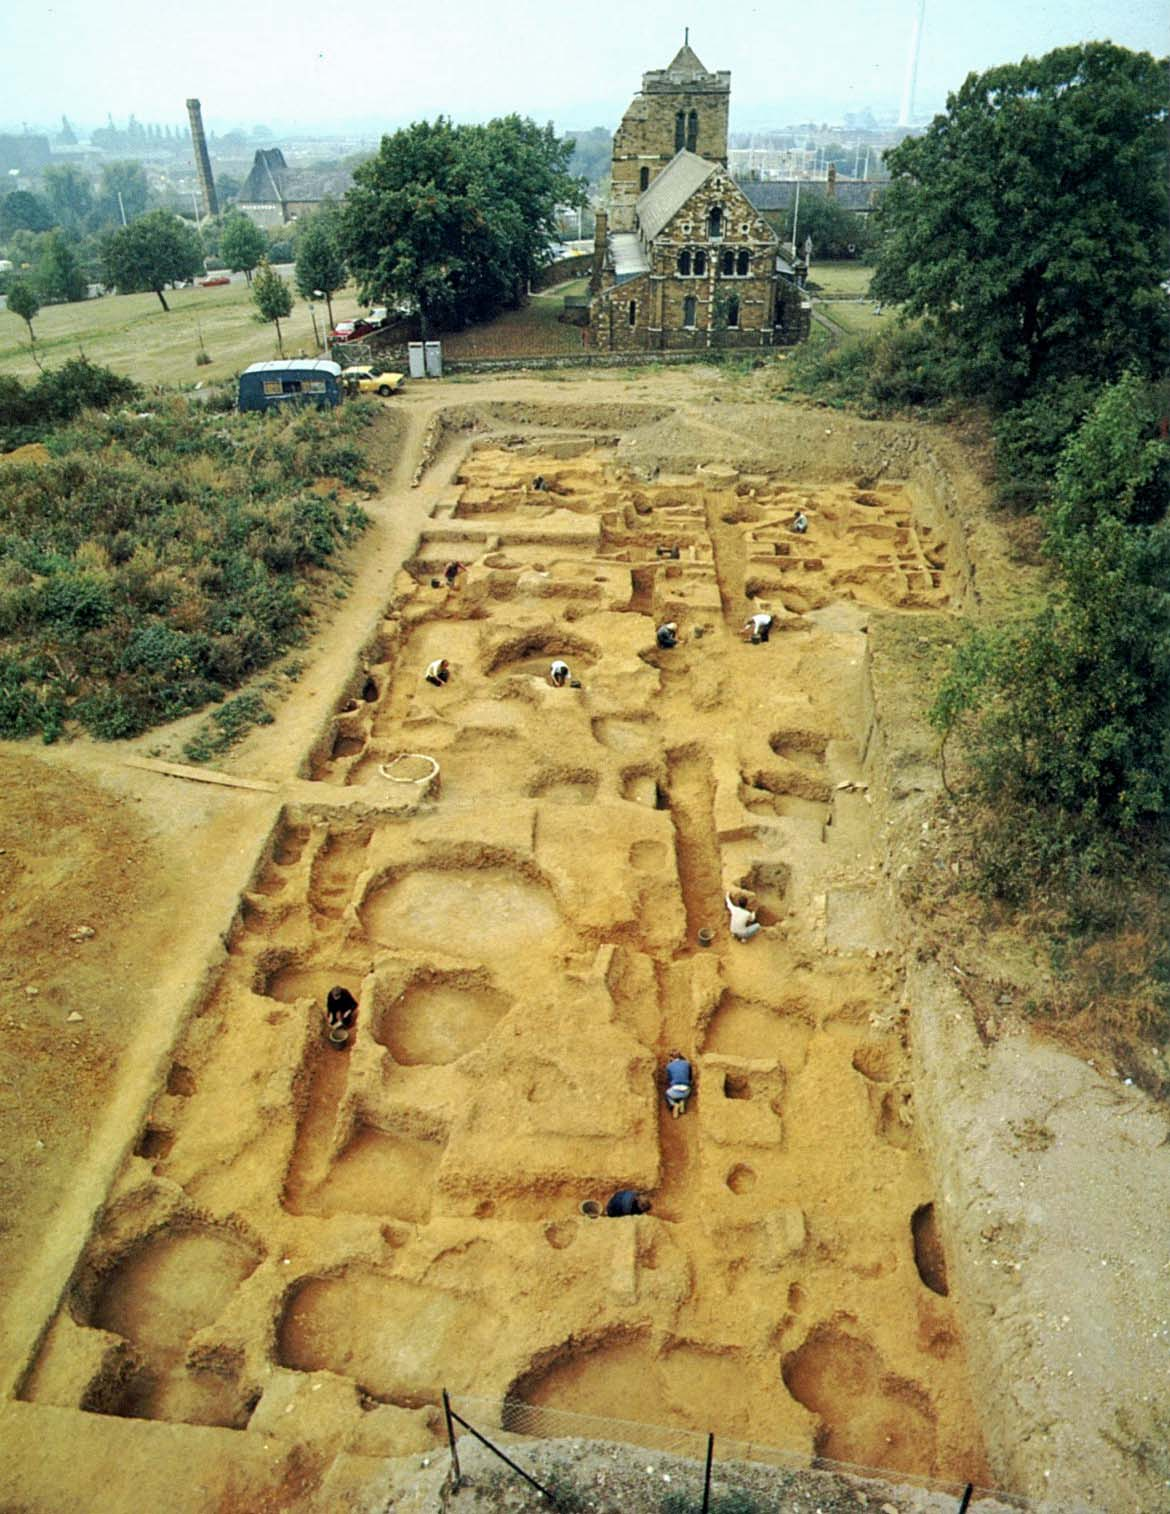 A photo of a very large archaeological excavation approximately 100 metres long, exposing an intricate and complex structure just underneath the surface. A church can be seen just behind the excavation.